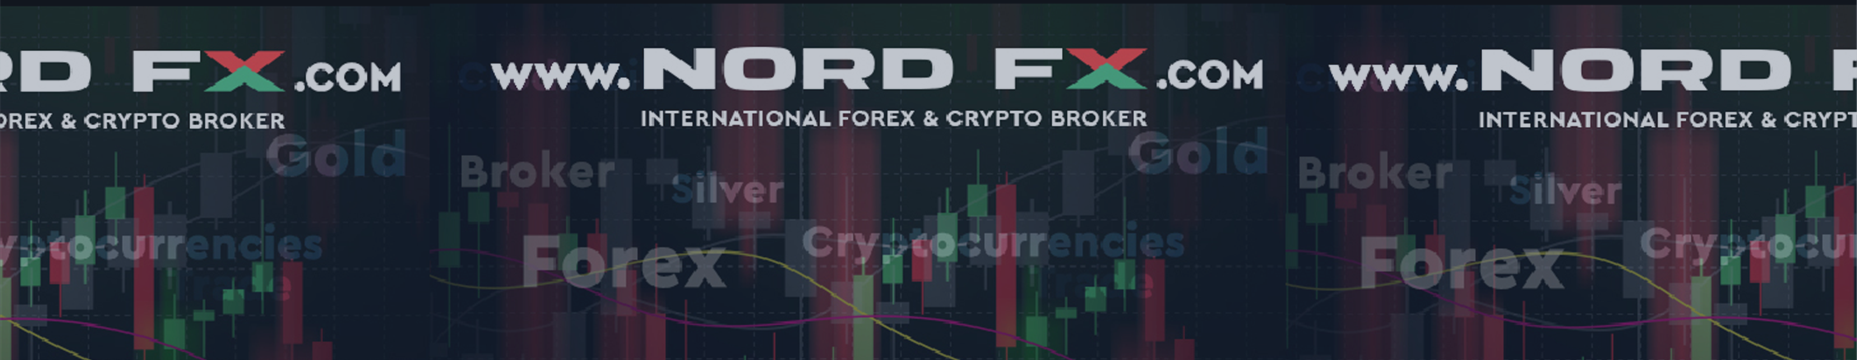 Forex and Cryptocurrency Forecast for August 10 - 14, 2020